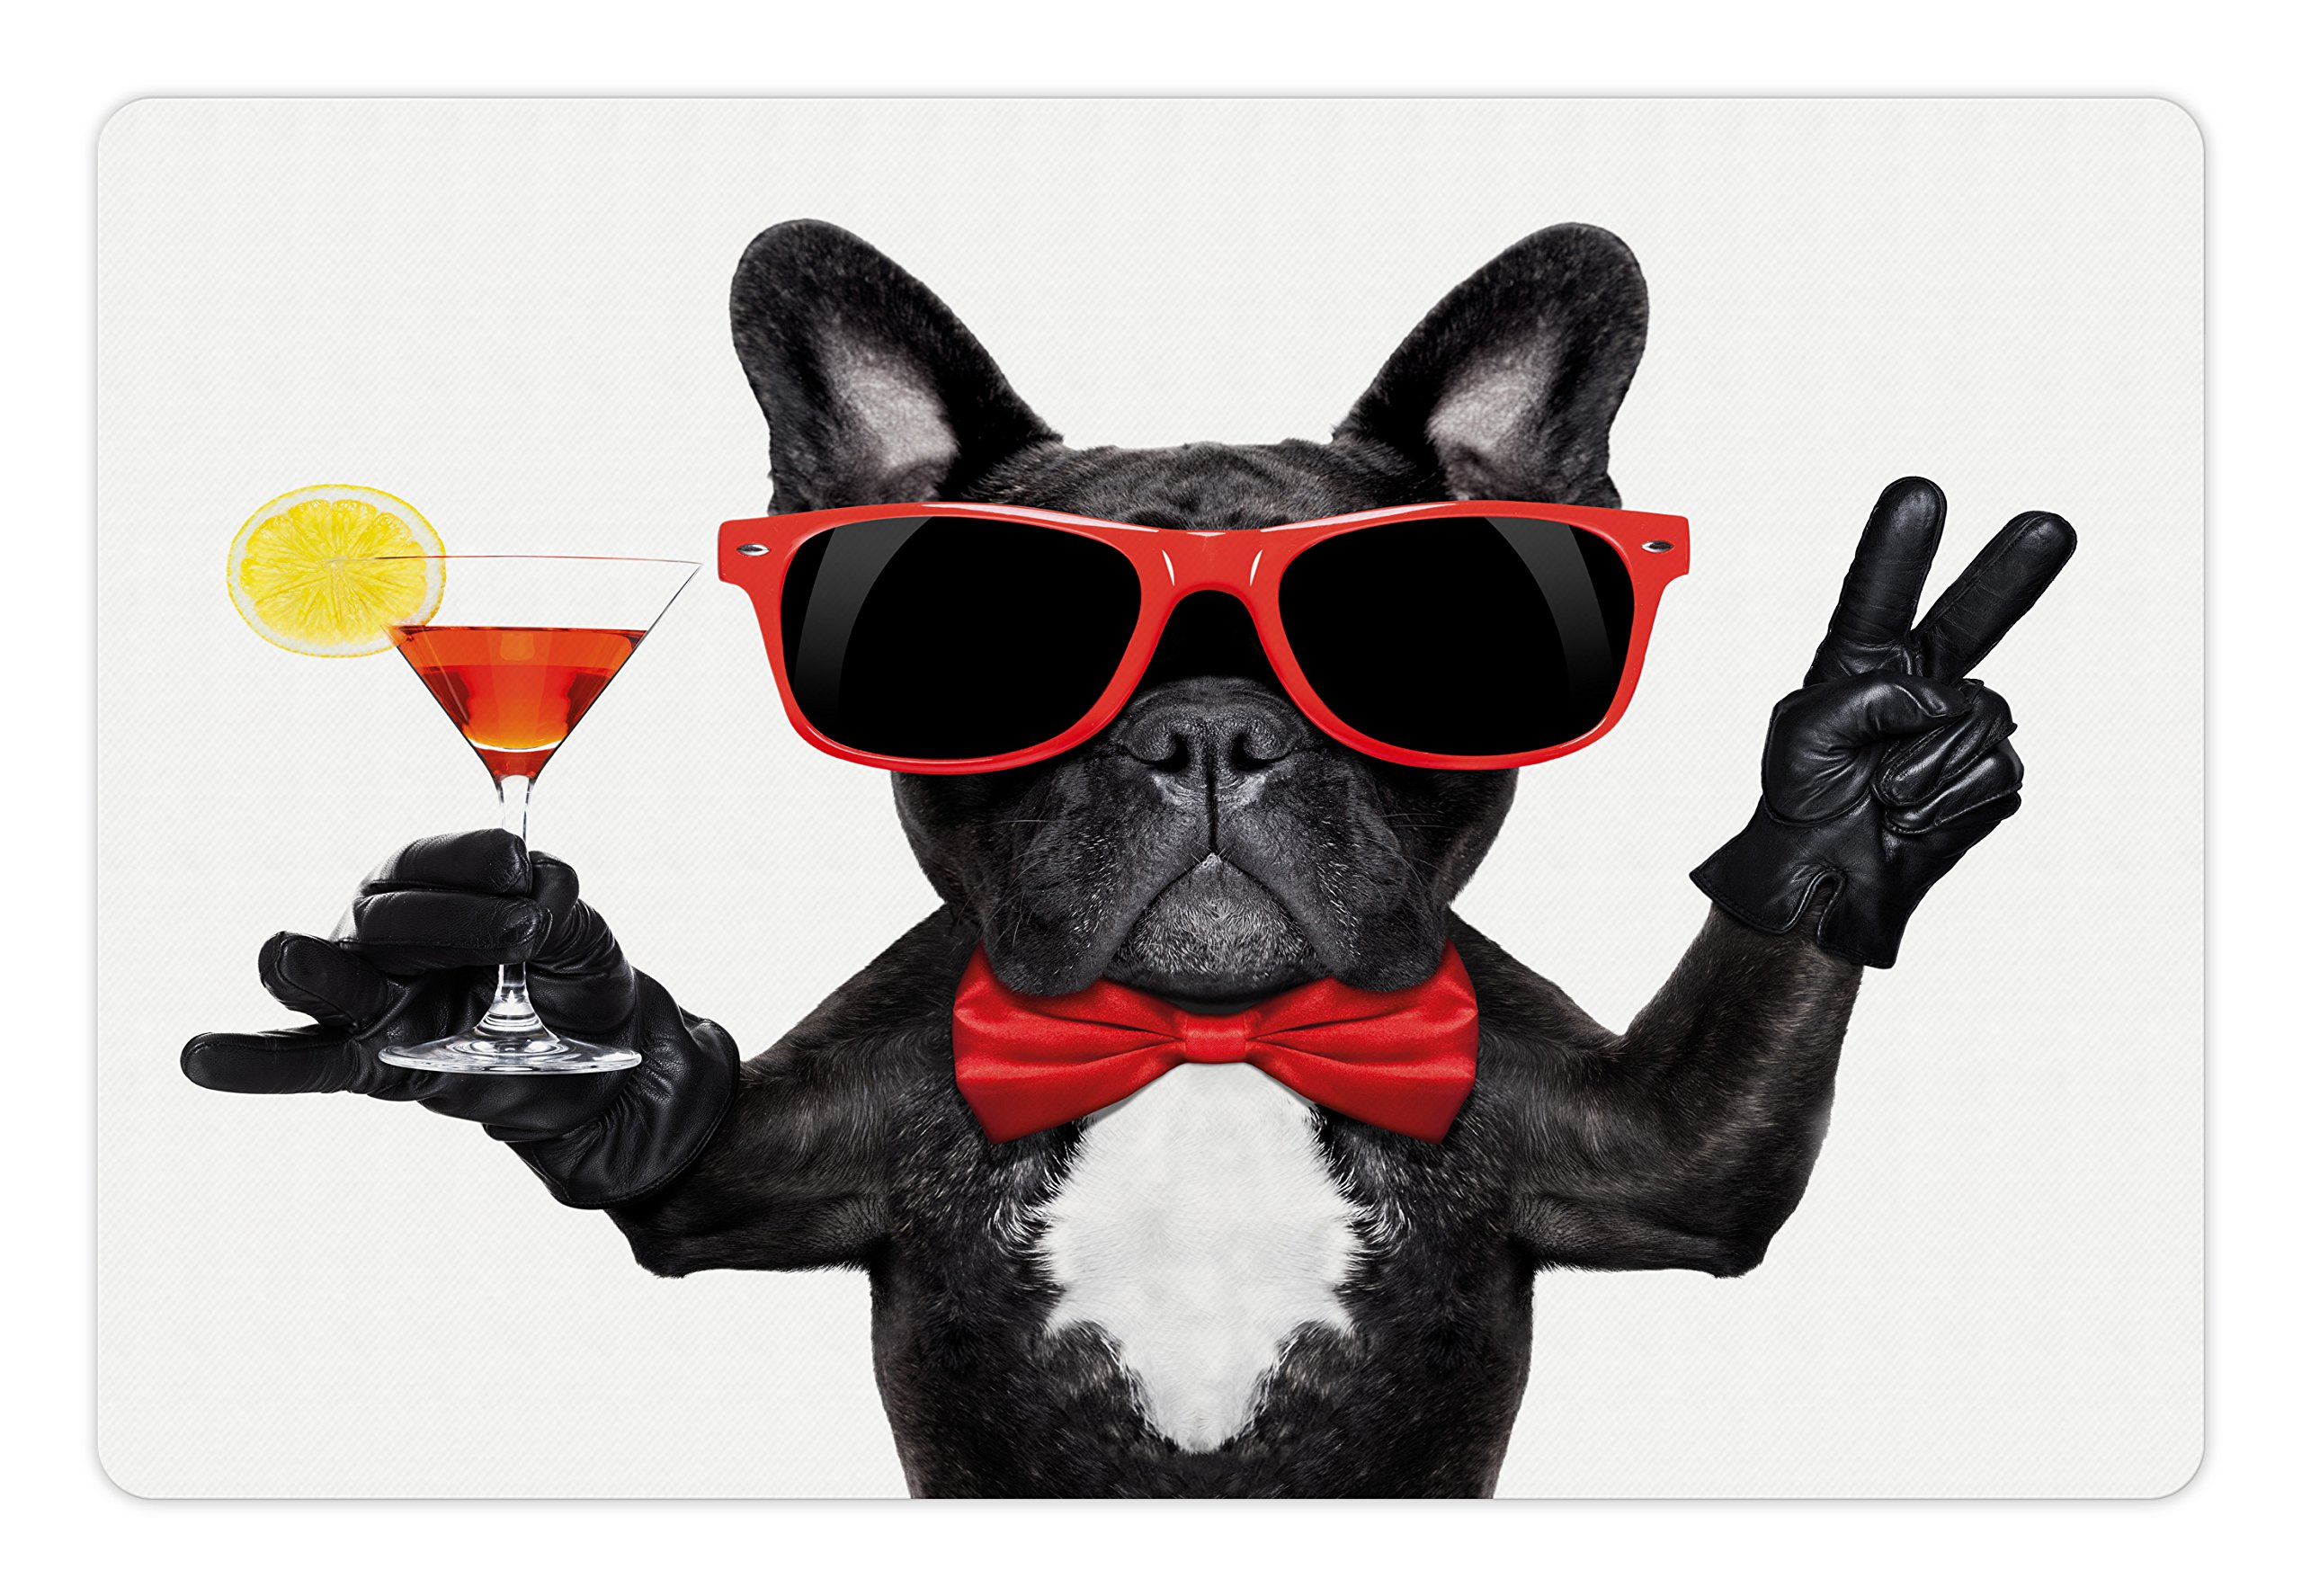 Funny Pet Mats for Food and Water by Lunarable, French Bulldog Holding Martini Cocktail Ready for the Party Nightlife Joy Print, Rectangle Non-Slip Rubber Mat for Dogs and Cats, Black Red White